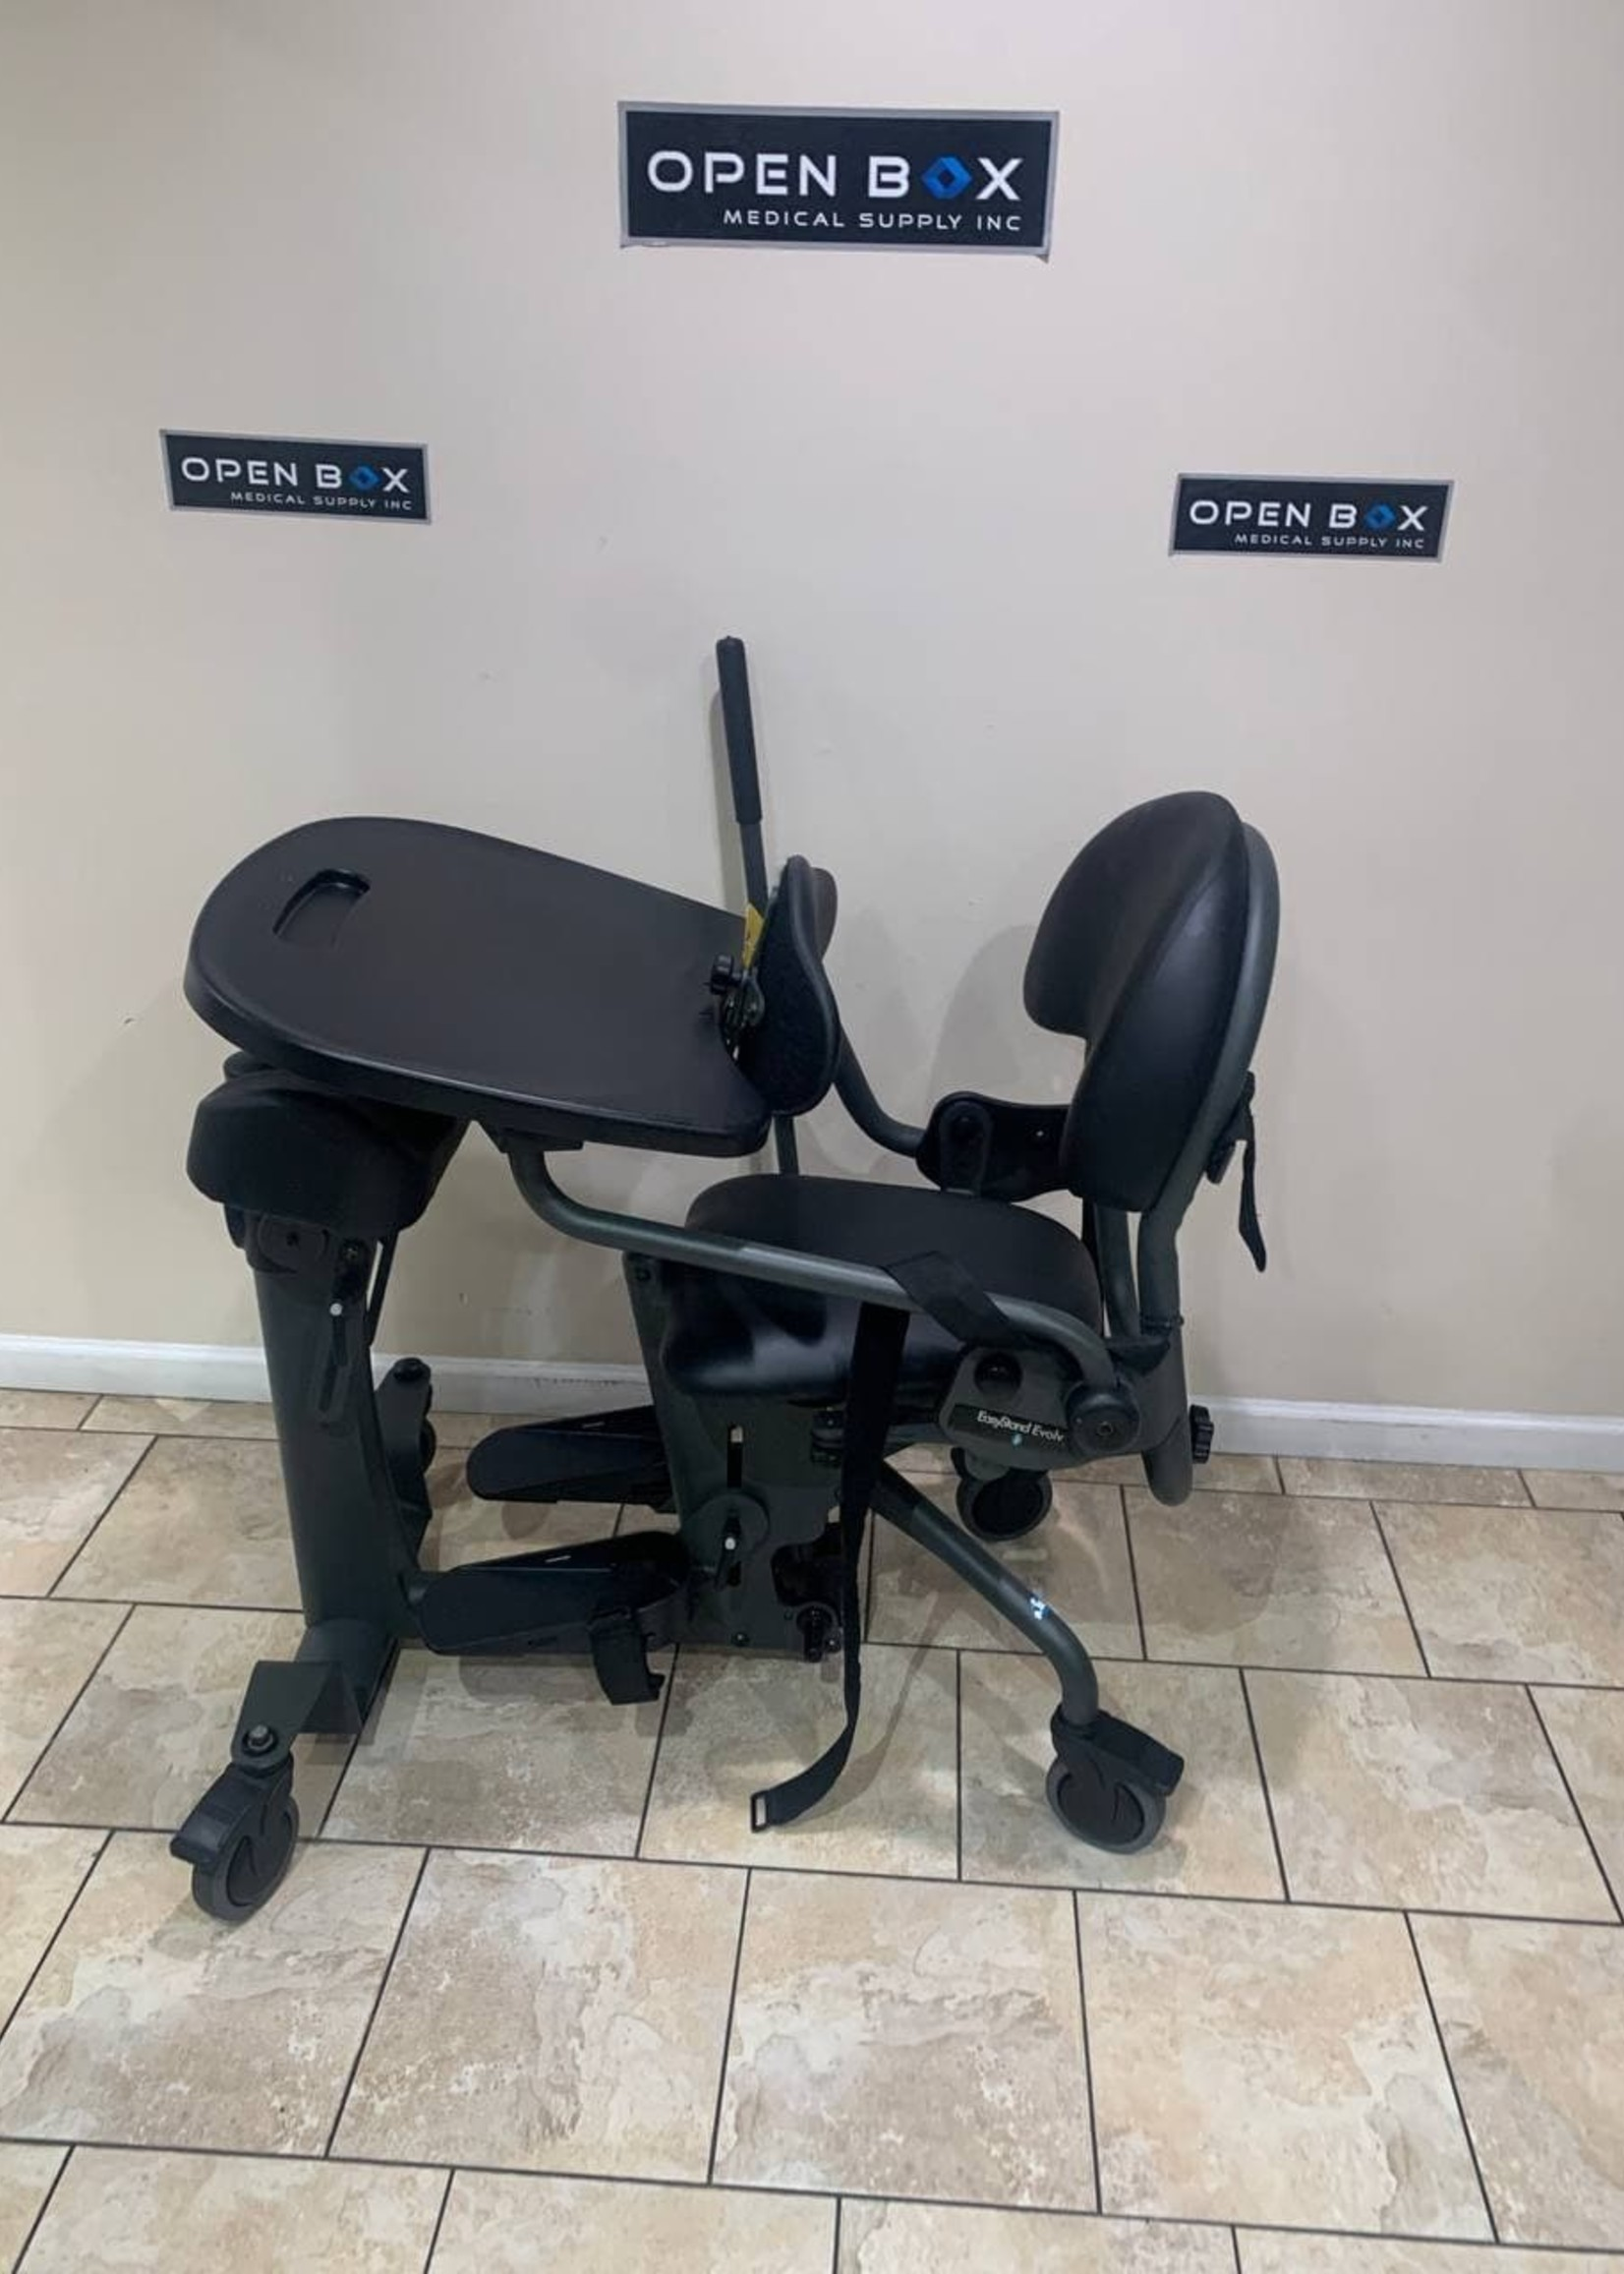 EasyStand EasyStand Evolv Adult Sit-to-Stand Lift (Used)